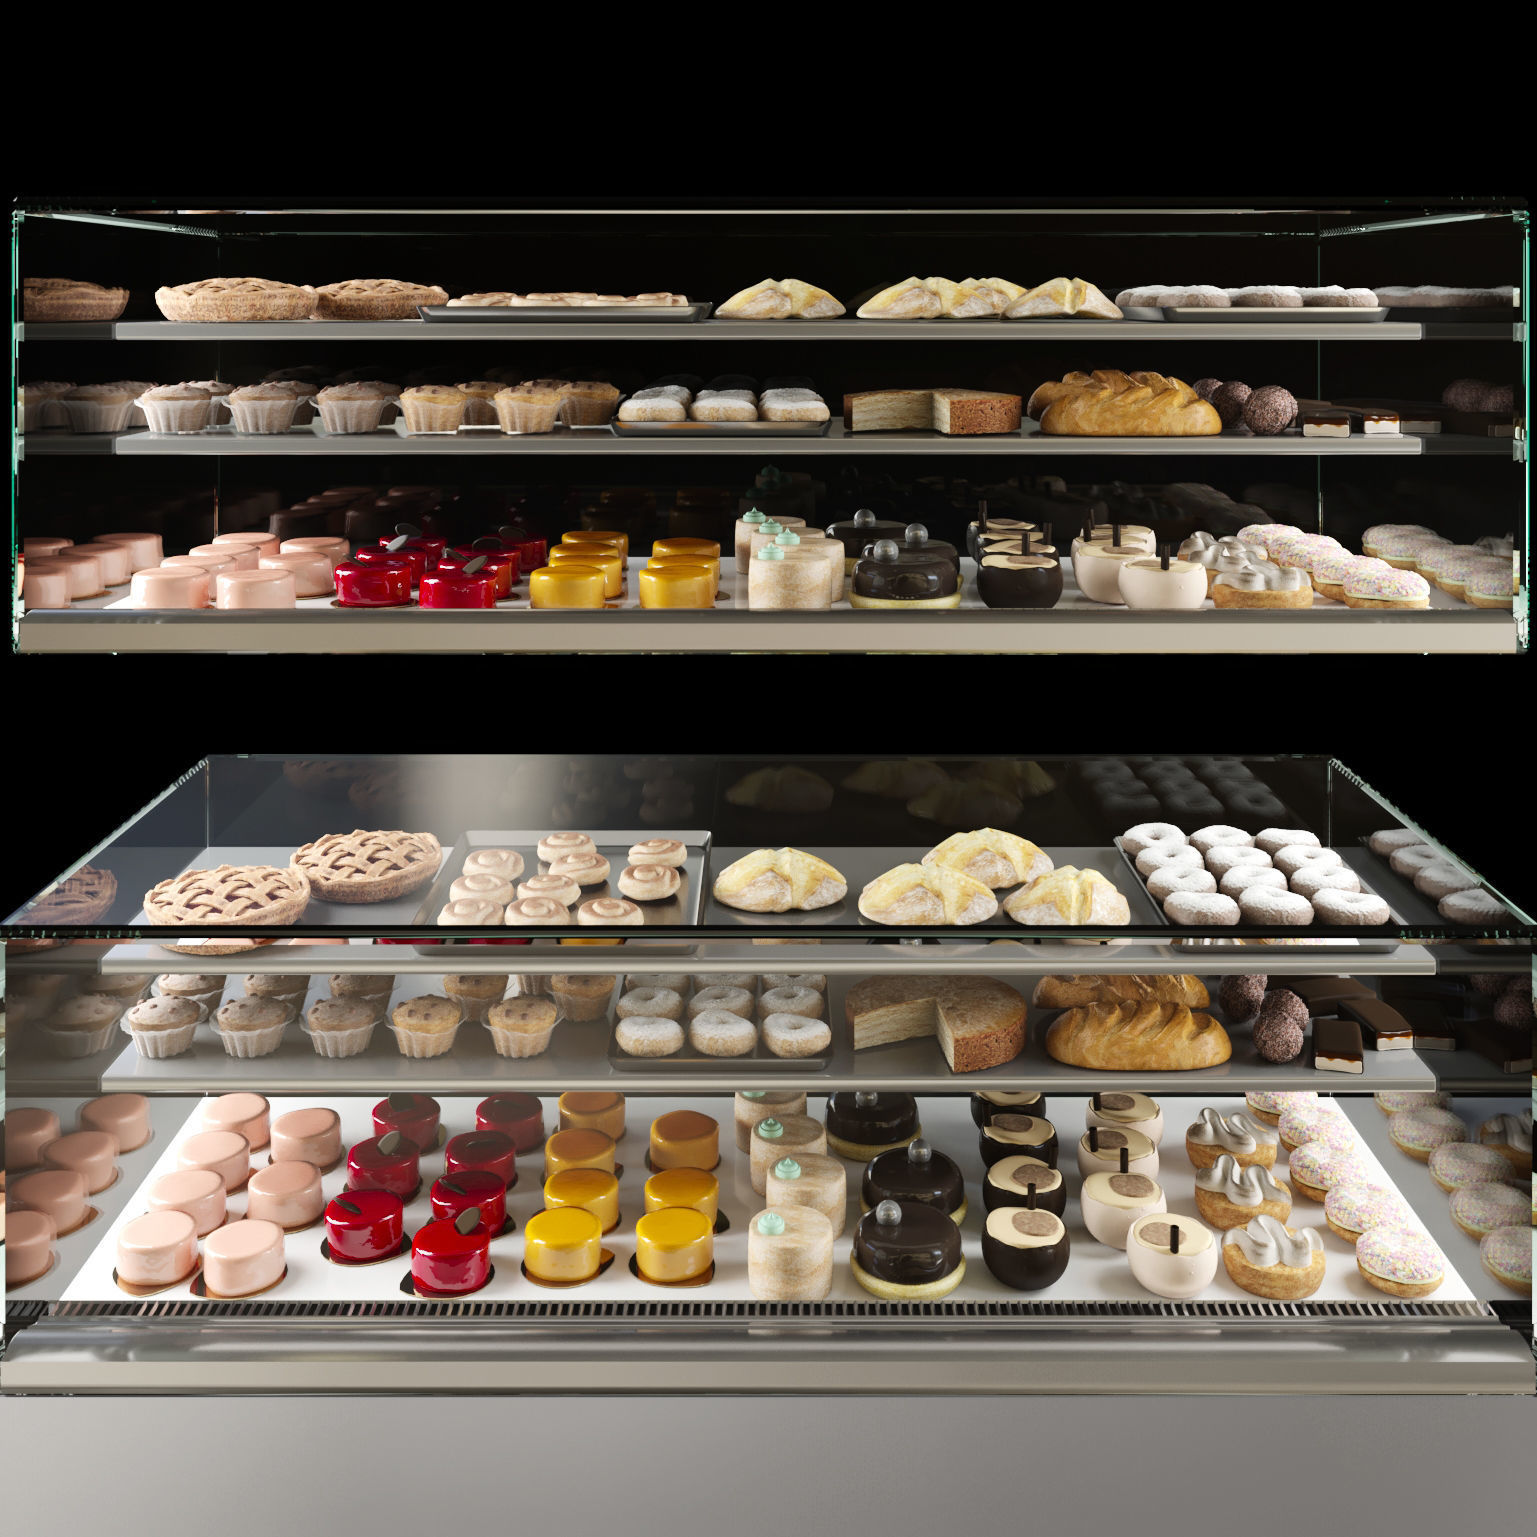 Fridge with desserts